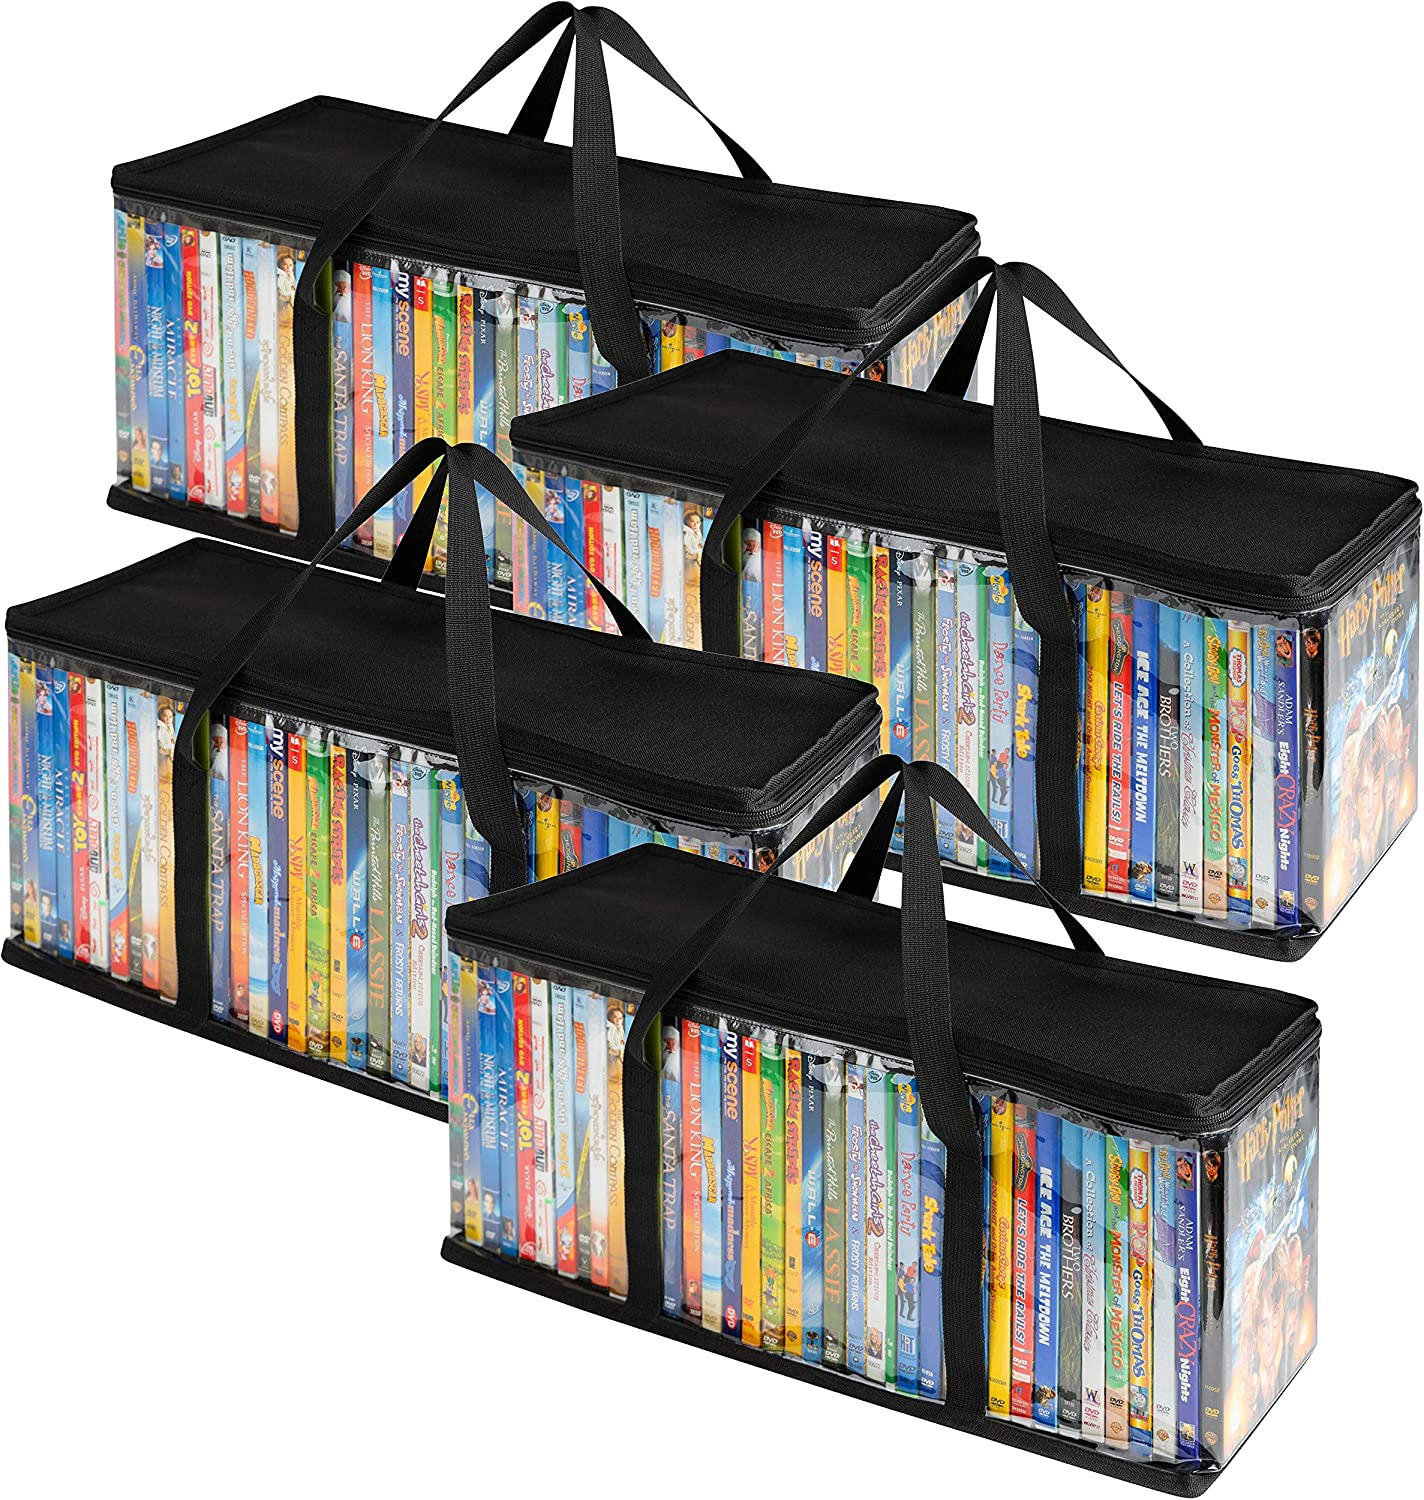 Stock Your Home DVD Storage Bags (4 Pack) - Transparent PVC Media Storage - Water Resistant DVD Holder Case with Handles - Clear Plastic Carrying Game Bag Storage for DVDs, CDs, Video Games, Books